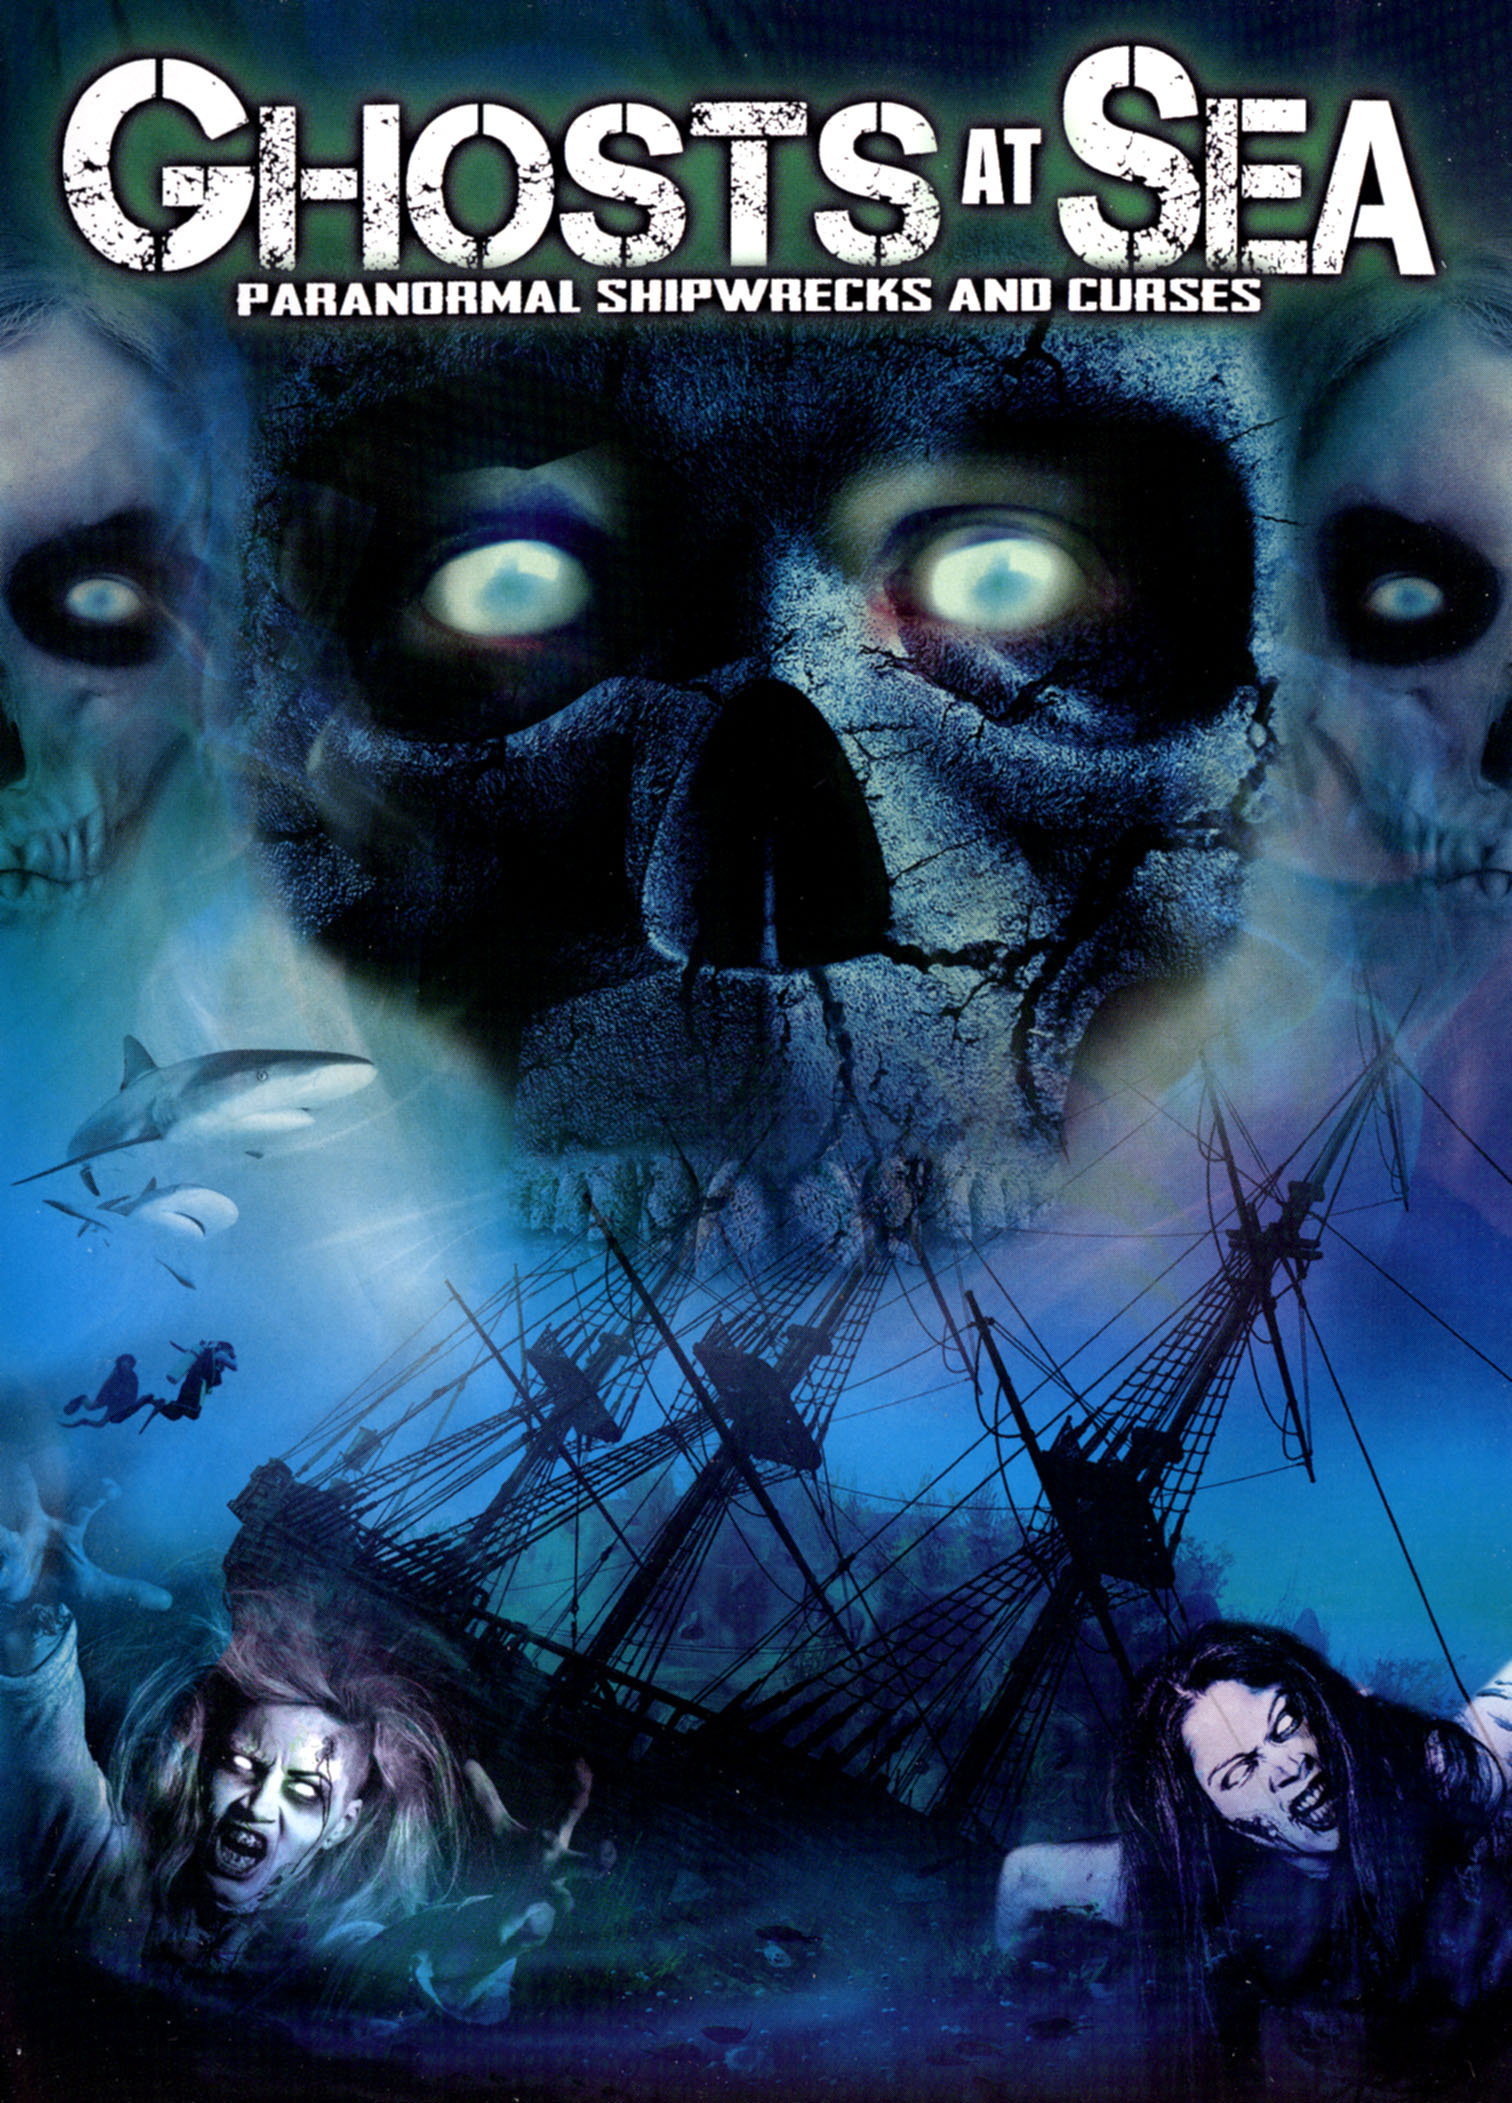 Ghost at Sea: Paranormal Shipwrecks and Curses